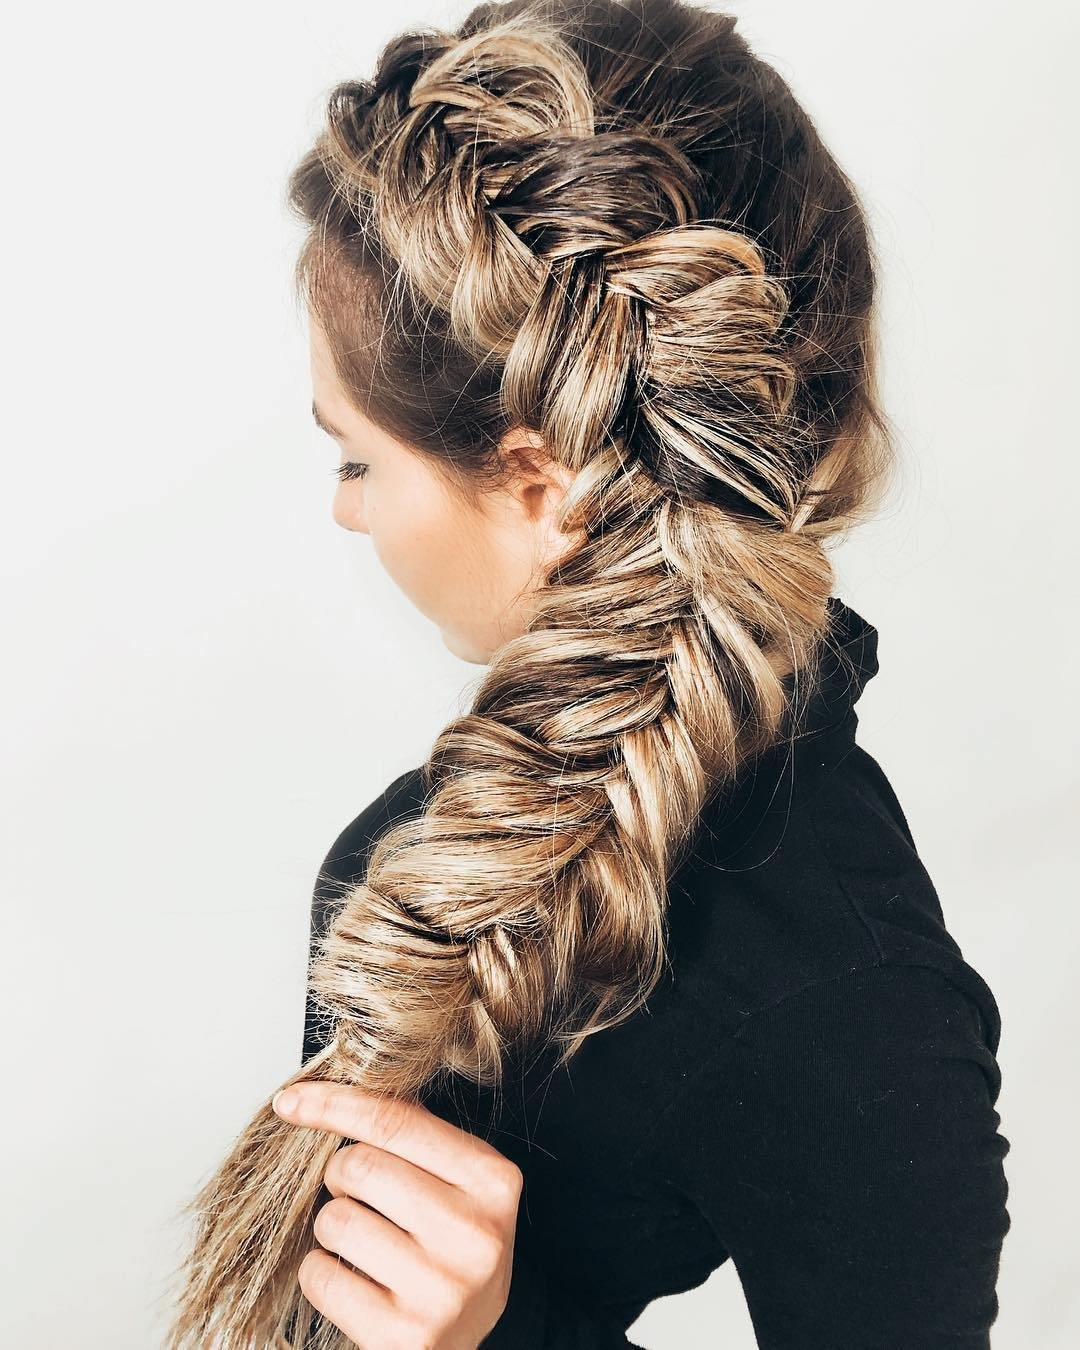 New The Best Braided Hairstyles For 2019 Health Ideas With Pictures